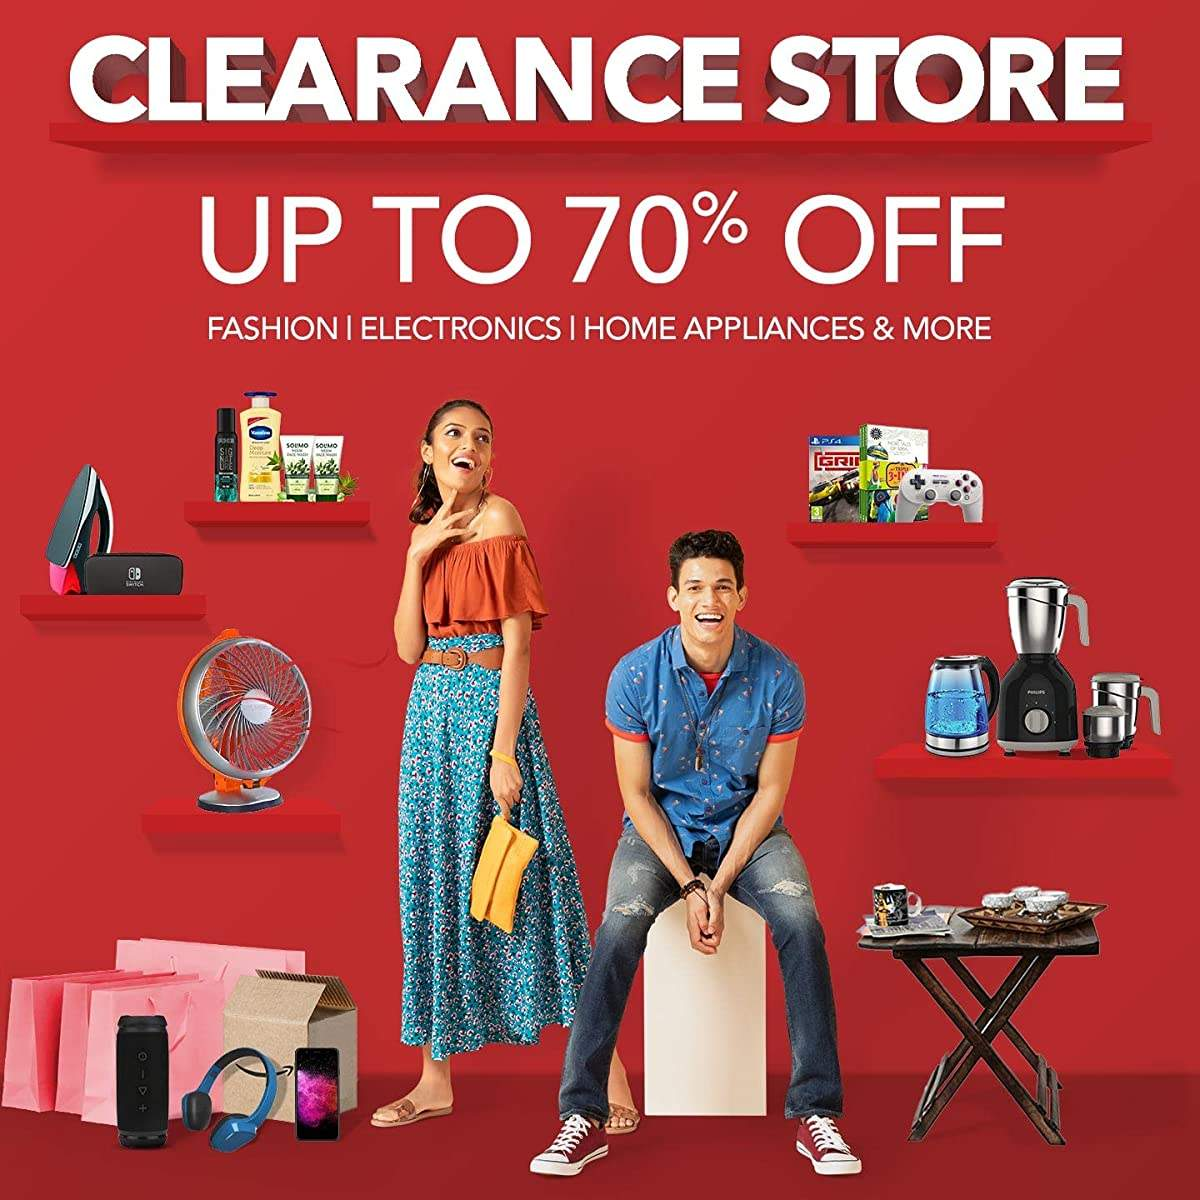 Amazon Clearance Store sale - Upto 70% off